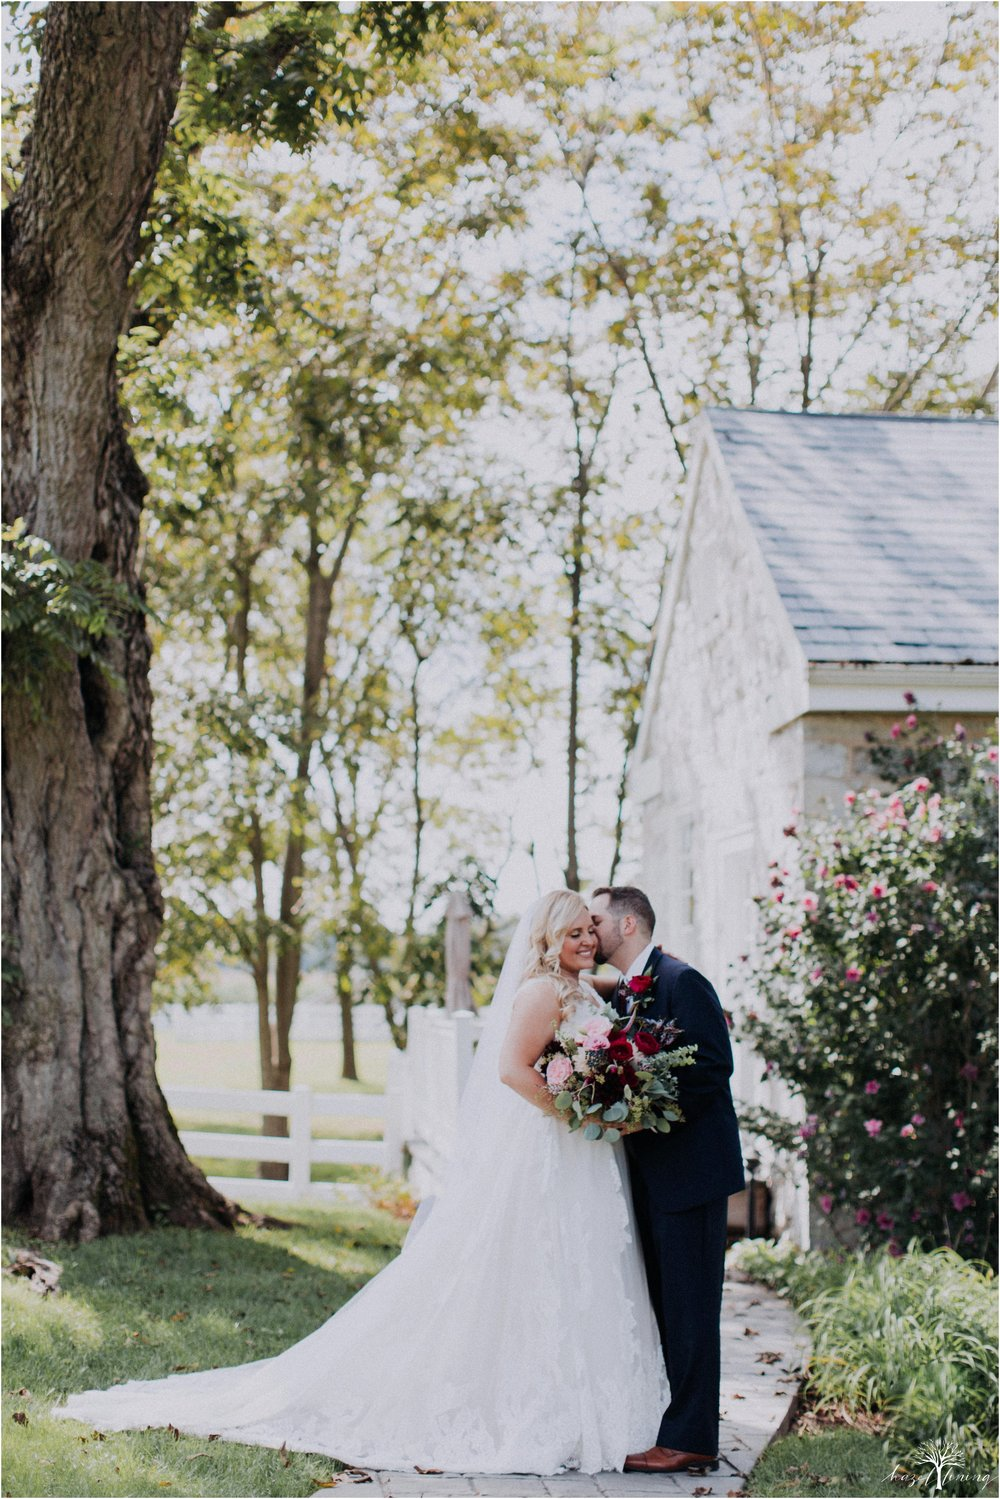 melanie-mnich-john-butler-the-barn-at-silverstone-summer-lancaster-pennsylvania-wedding-hazel-lining-travel-wedding-elopement-photography_0068.jpg